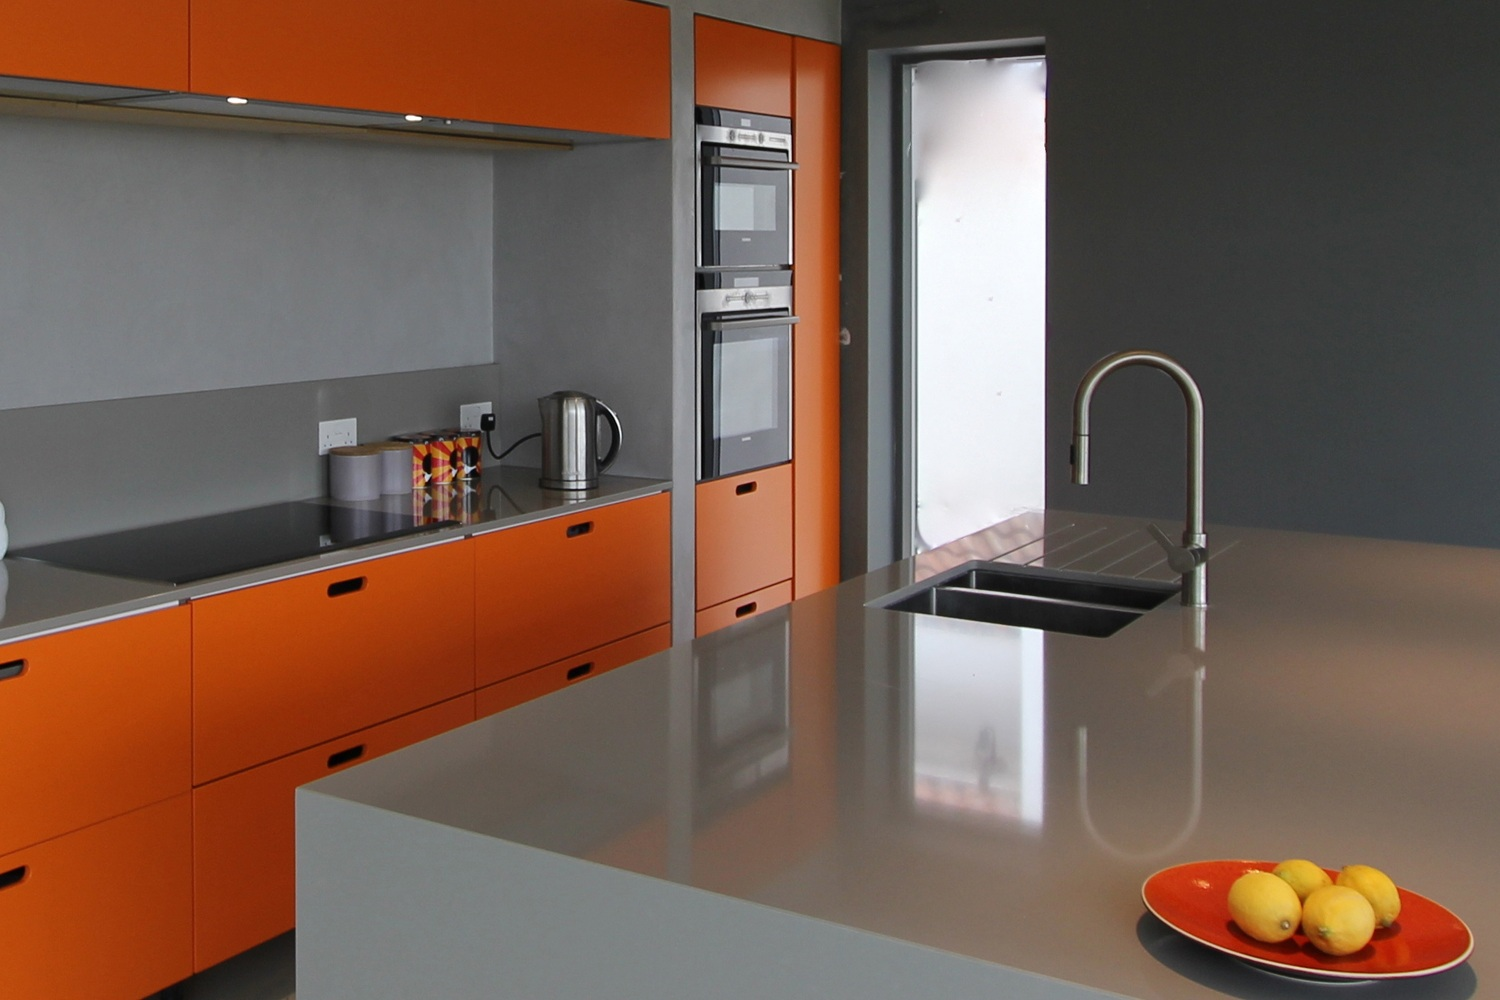 orange accented modern kitchen with lemons on a red plate